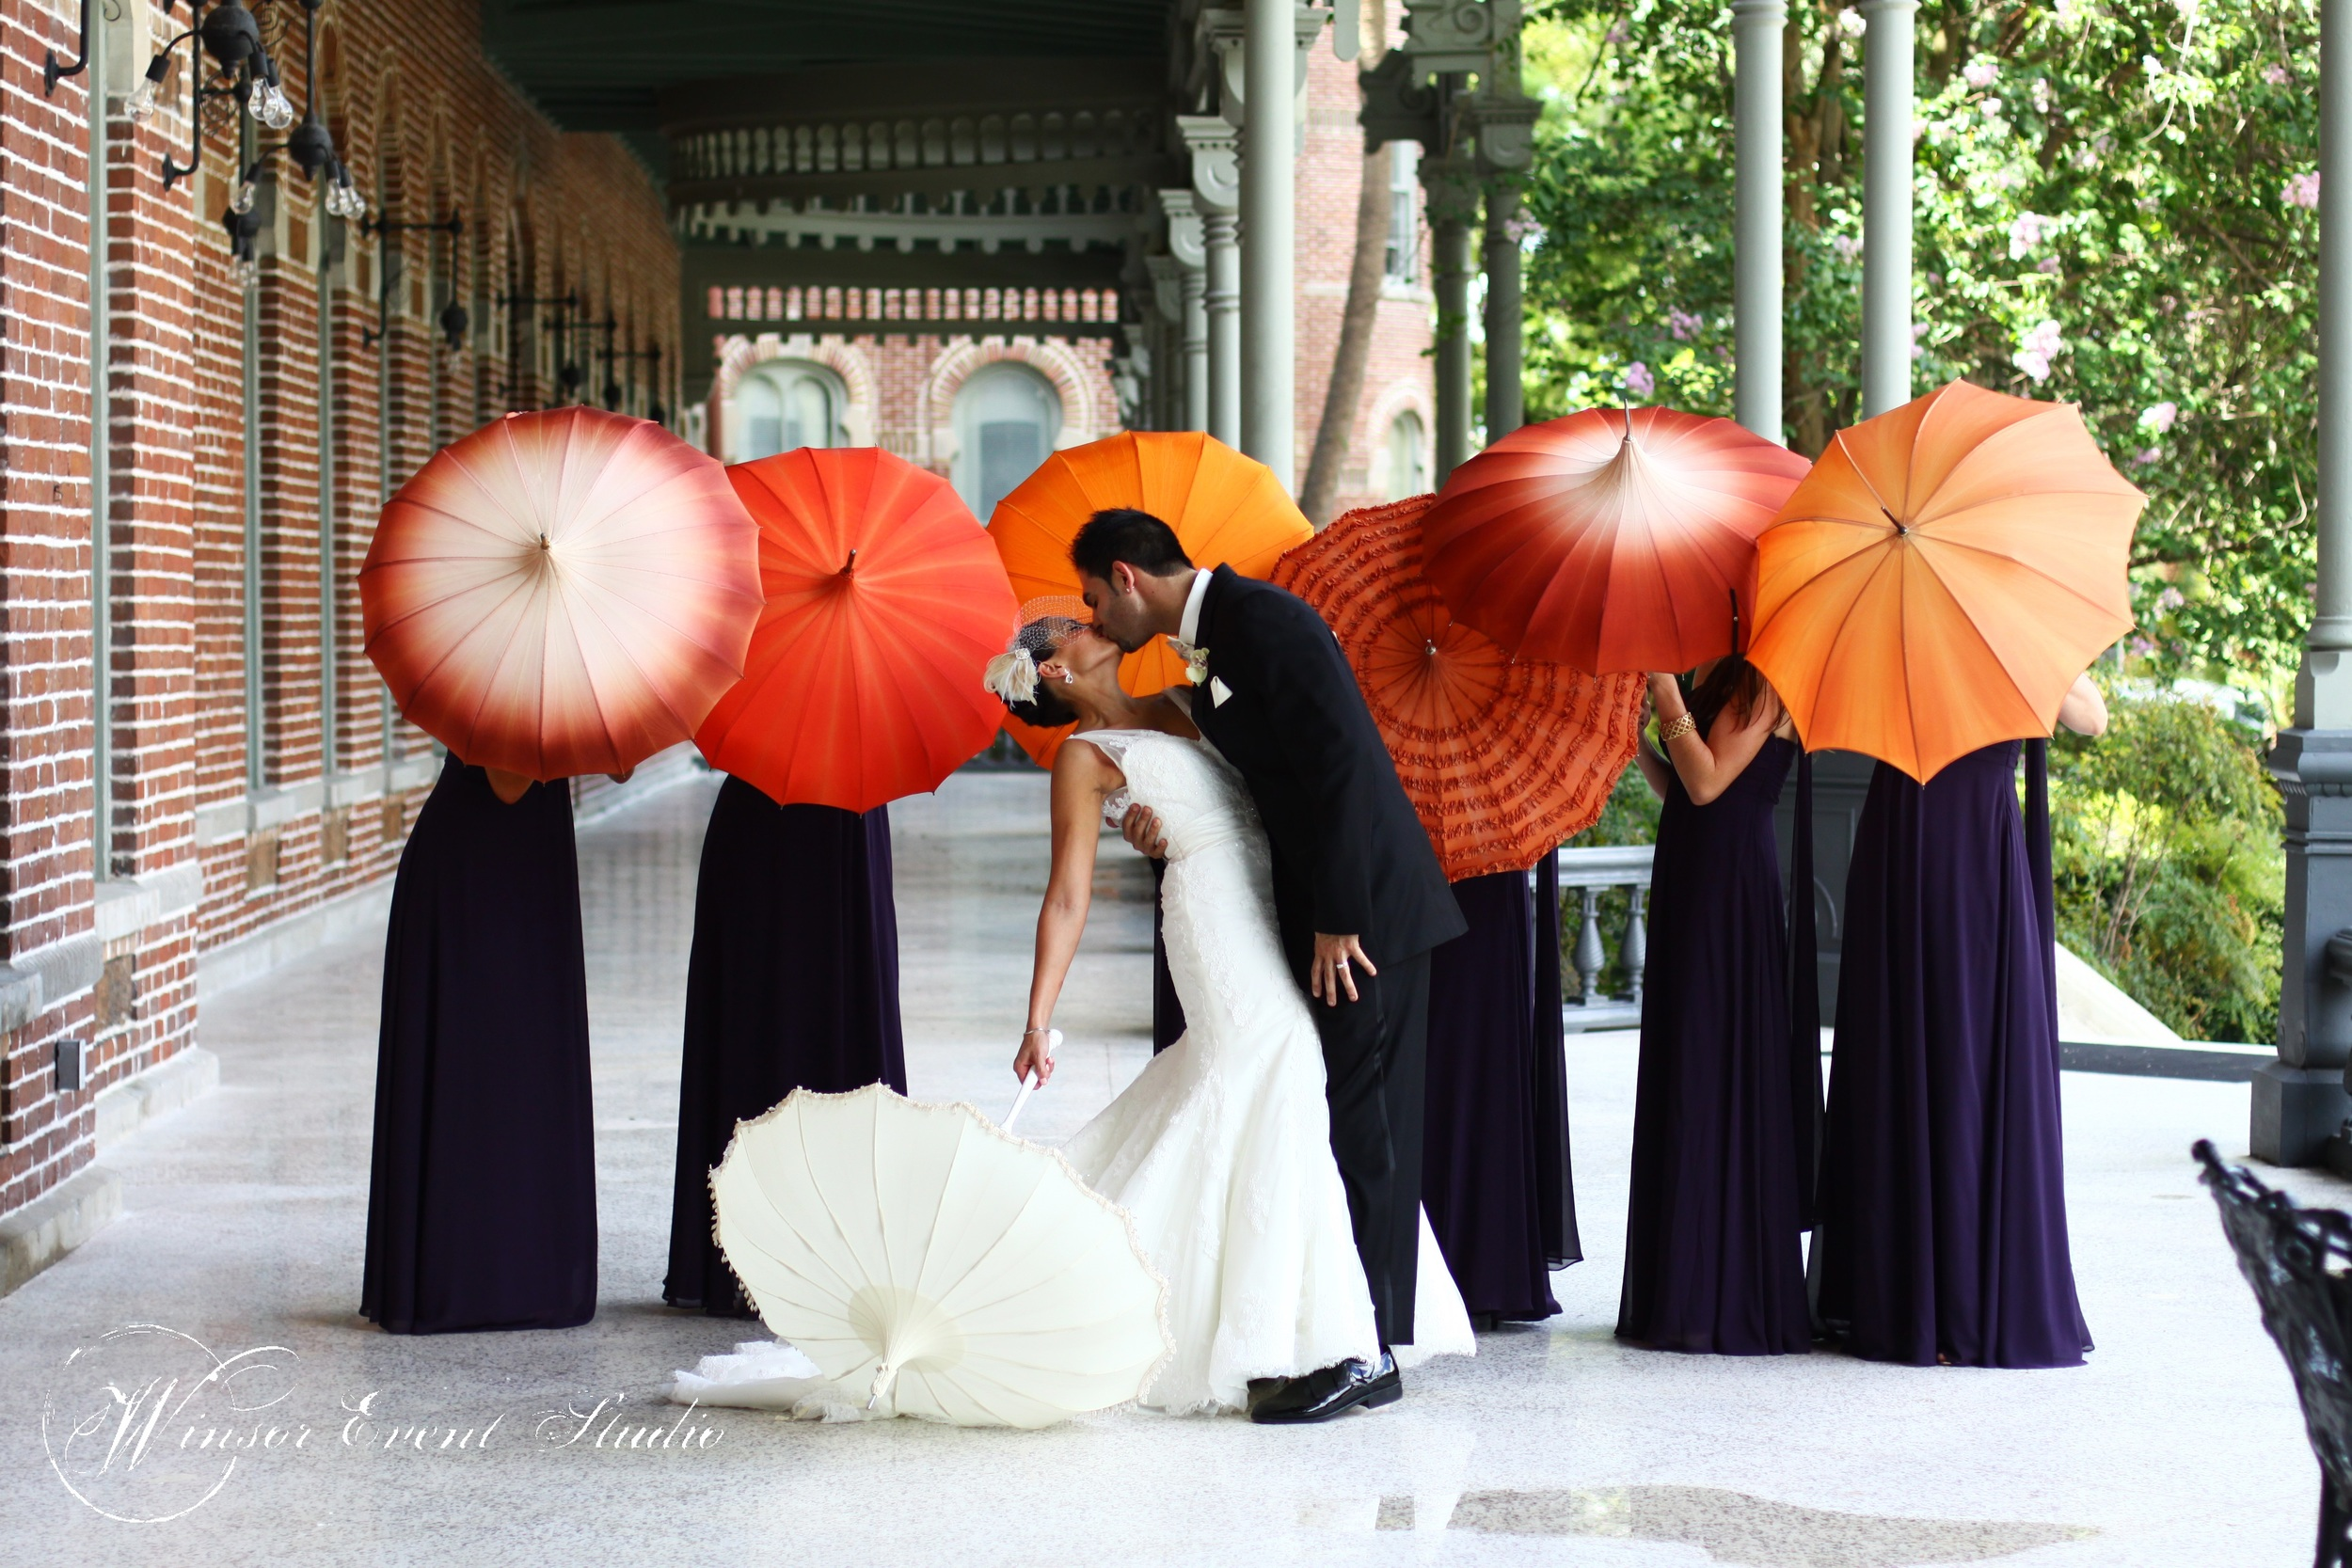 winsor event studio wedding parasols university of tampa henry plant museum